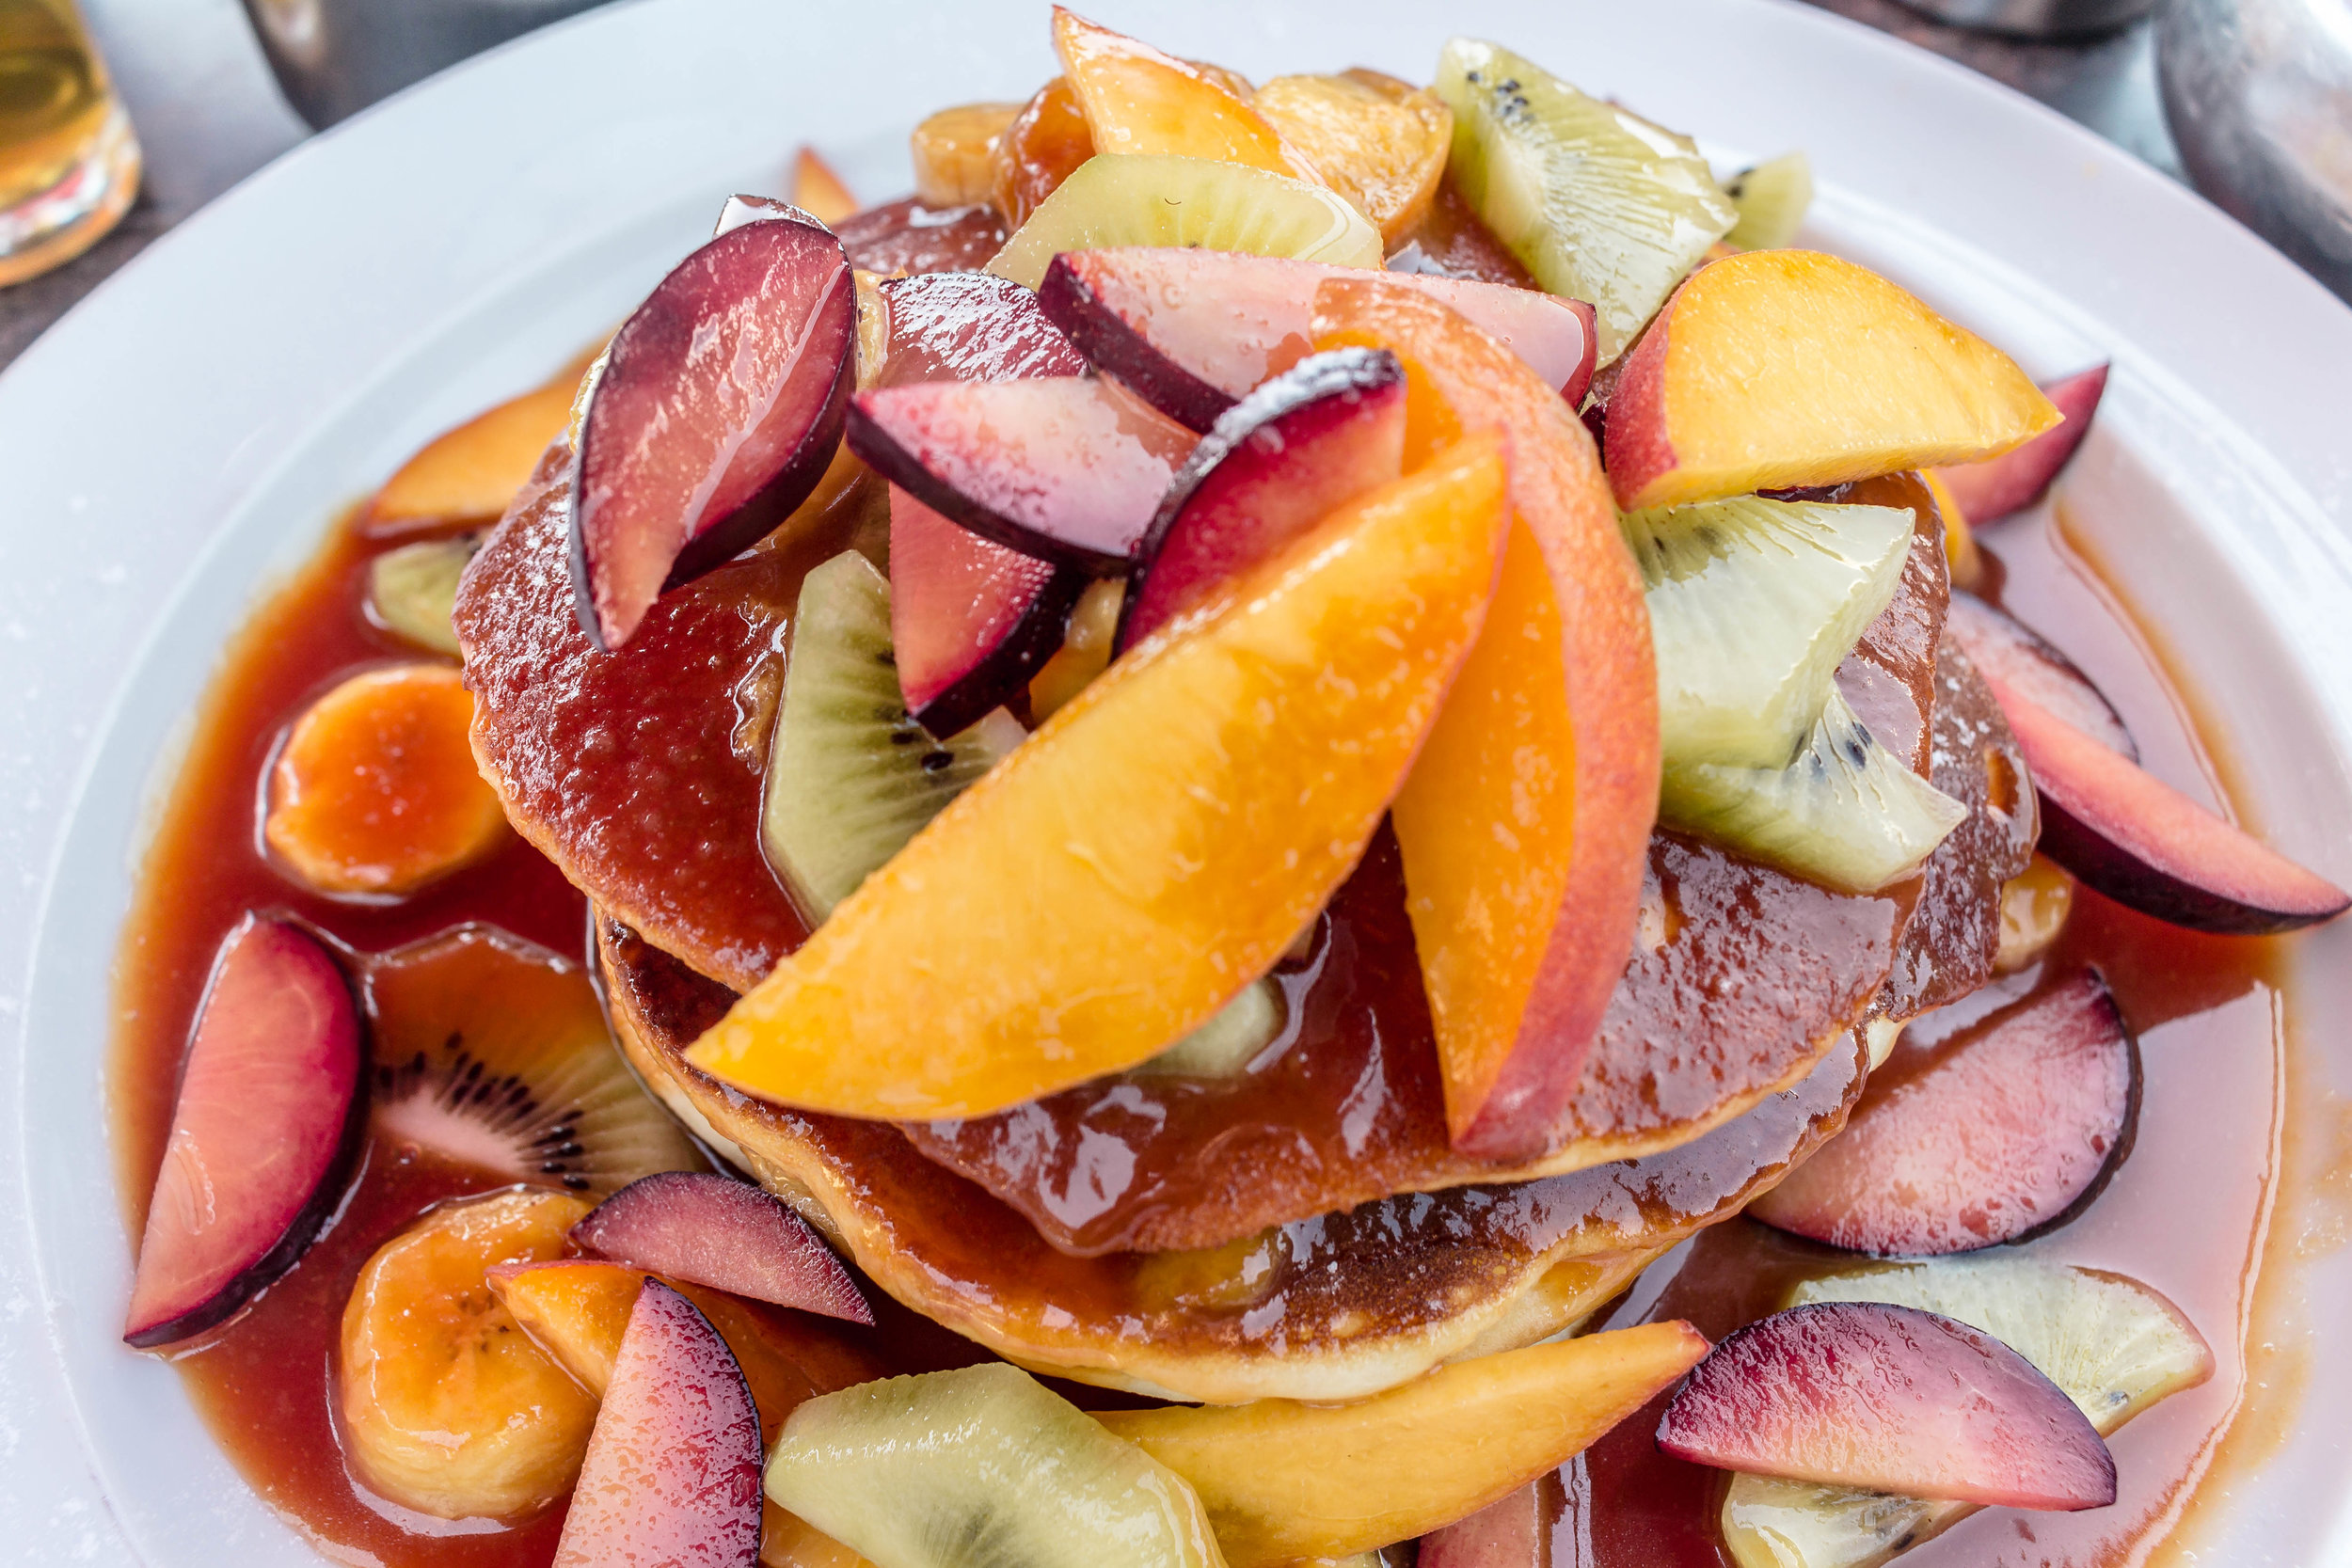 FRUITY PANCAKES FROM CLOCK CAFÉ